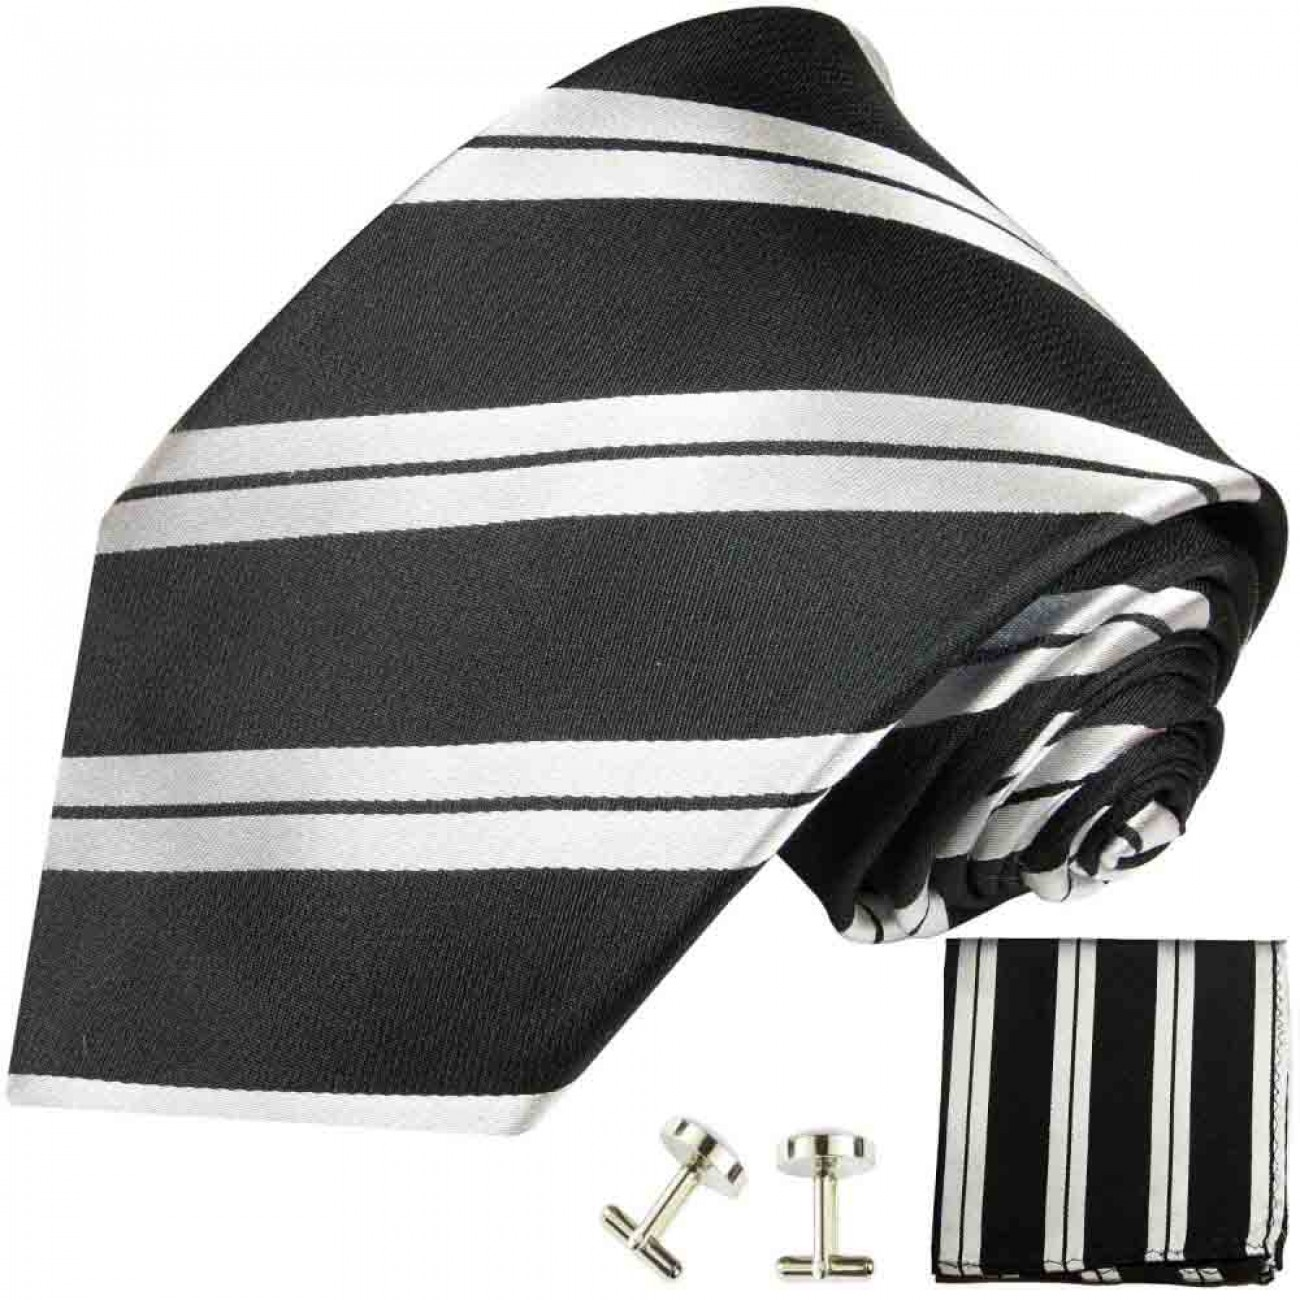 black silver mens tie striped necktie - silk tie and pocket square and cufflinks